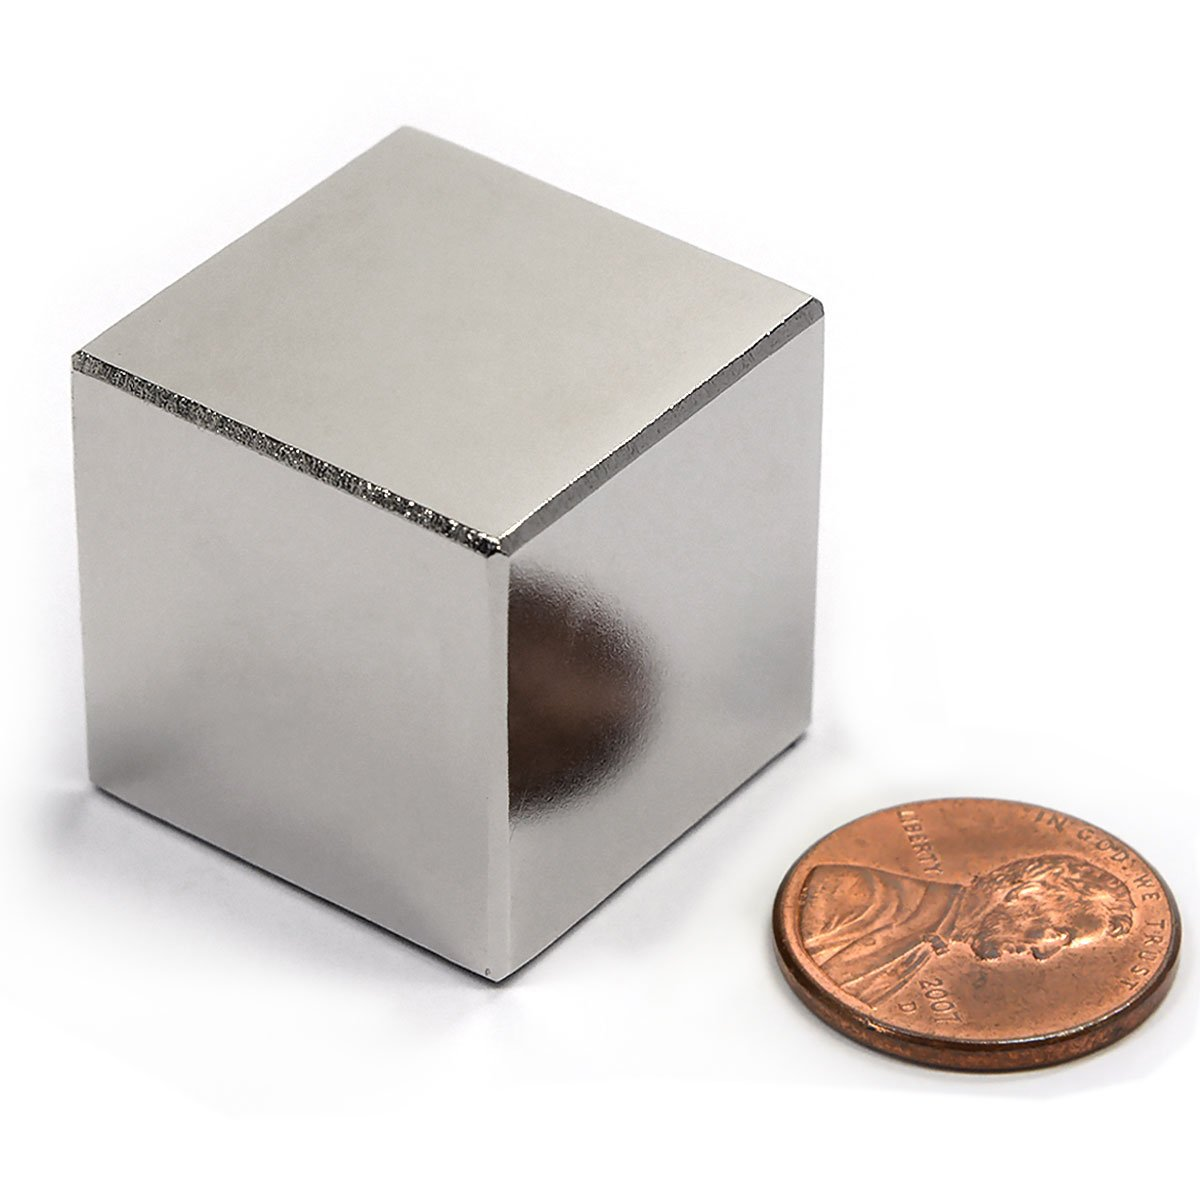 "CMS Magnetics® Neodymium Magnet N42 1"" Cube NdFeB Rare Earth Magnets 1-Count. Great for Stud Finder"